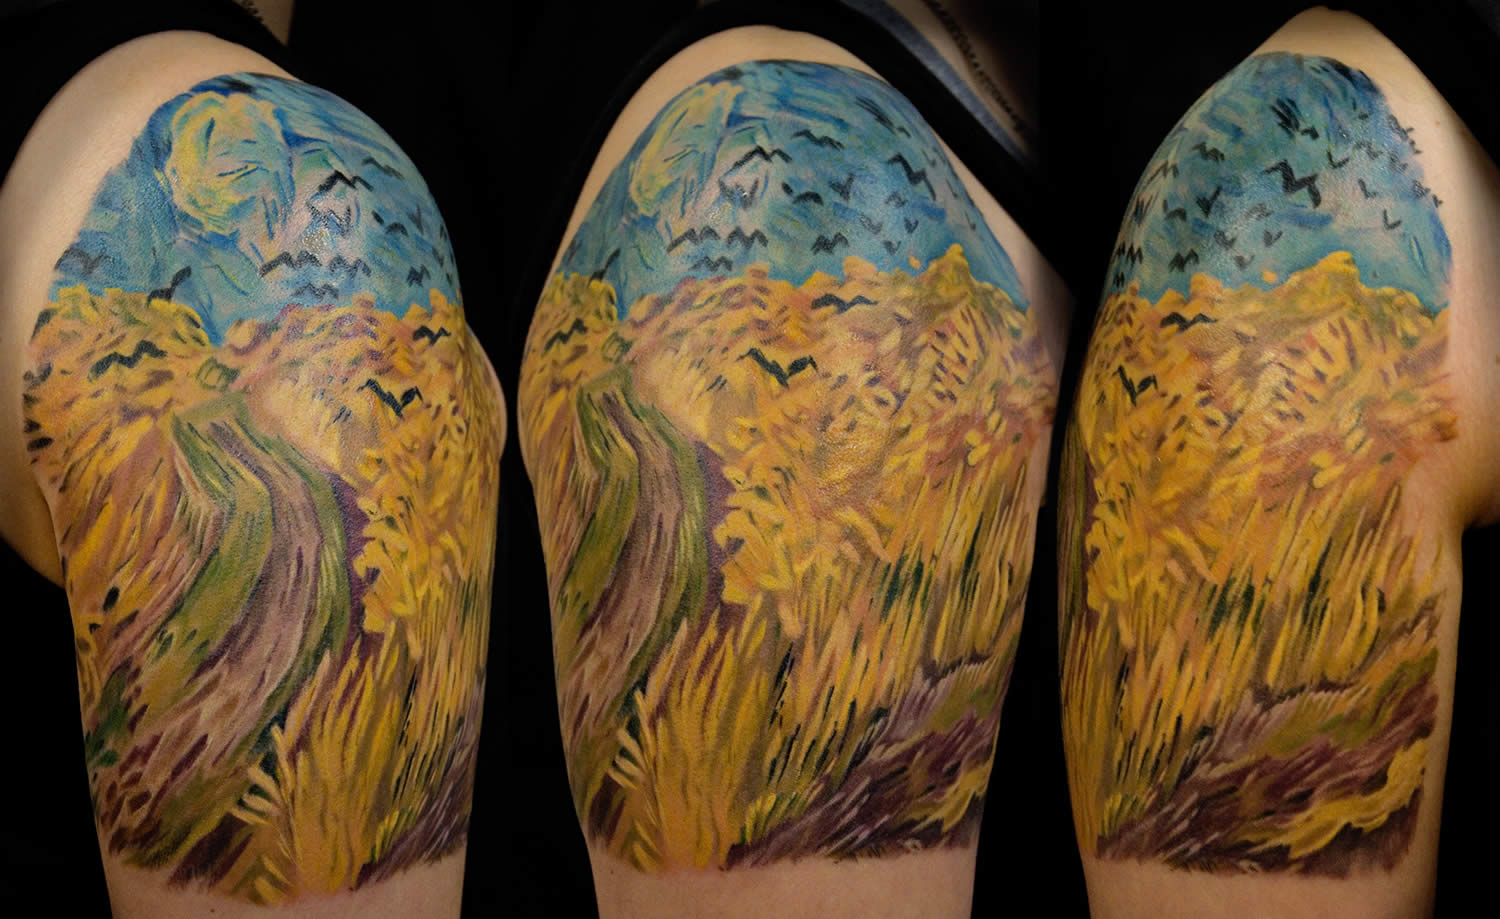 wheatfield tattoo sleeve by chris walkin. based on a van gogh painting